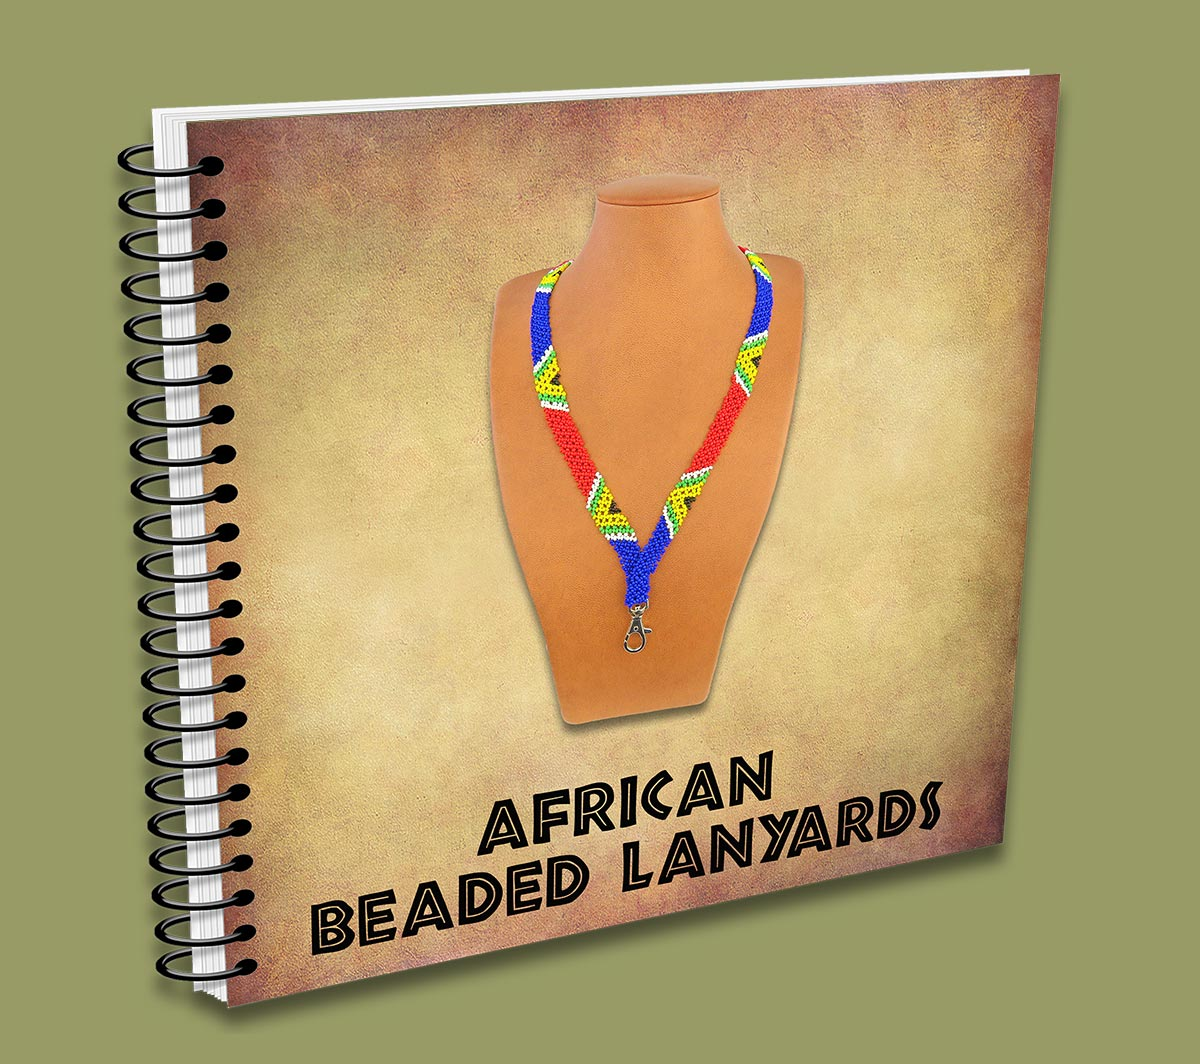 african-beaded-lanyards-catalogue-2